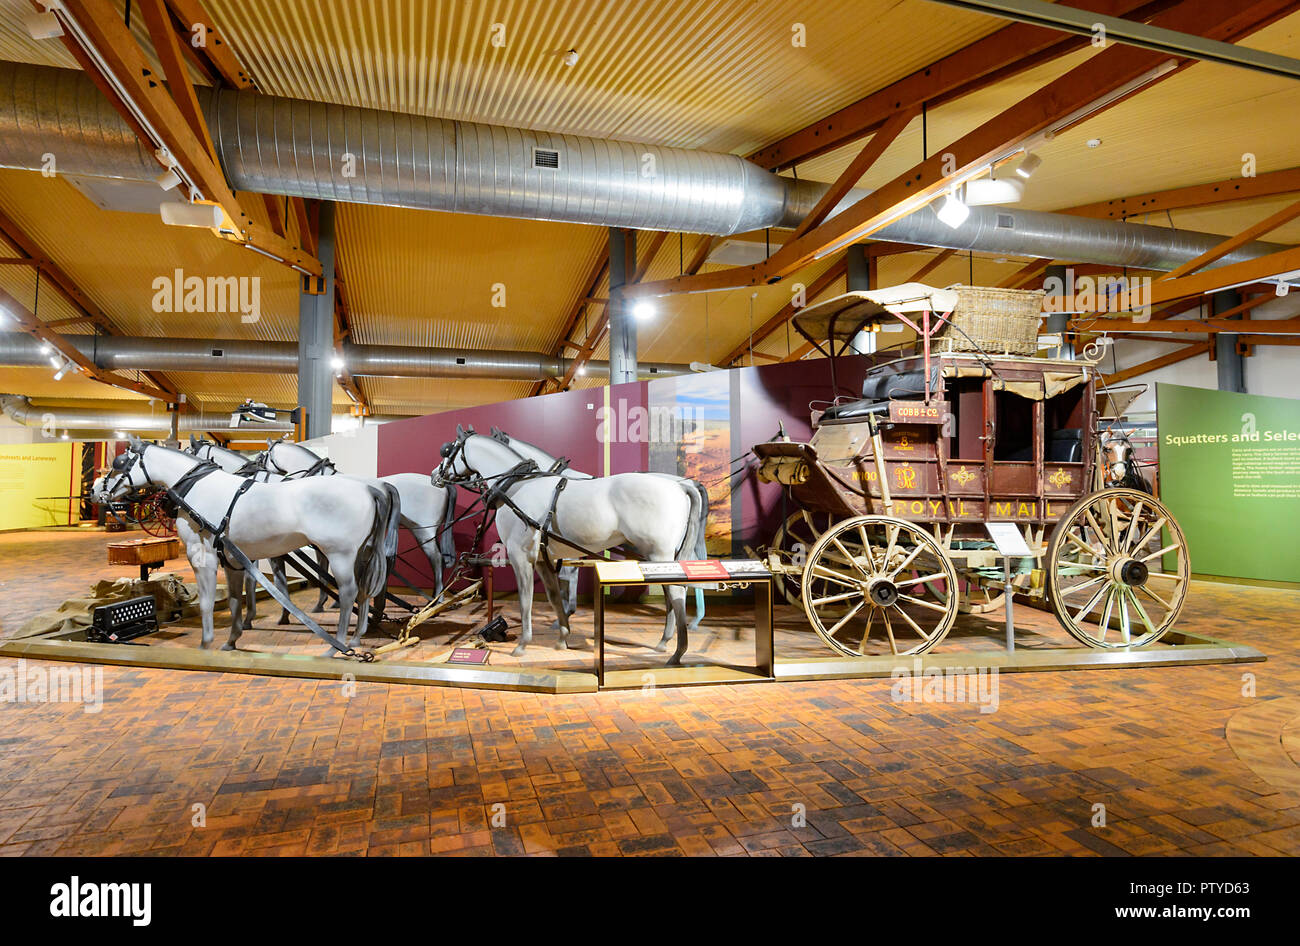 Royal Mail Coach on display at the Cobb & Co Museum, Toowoomba, Southern Queensland, QLD, Australia - Stock Image